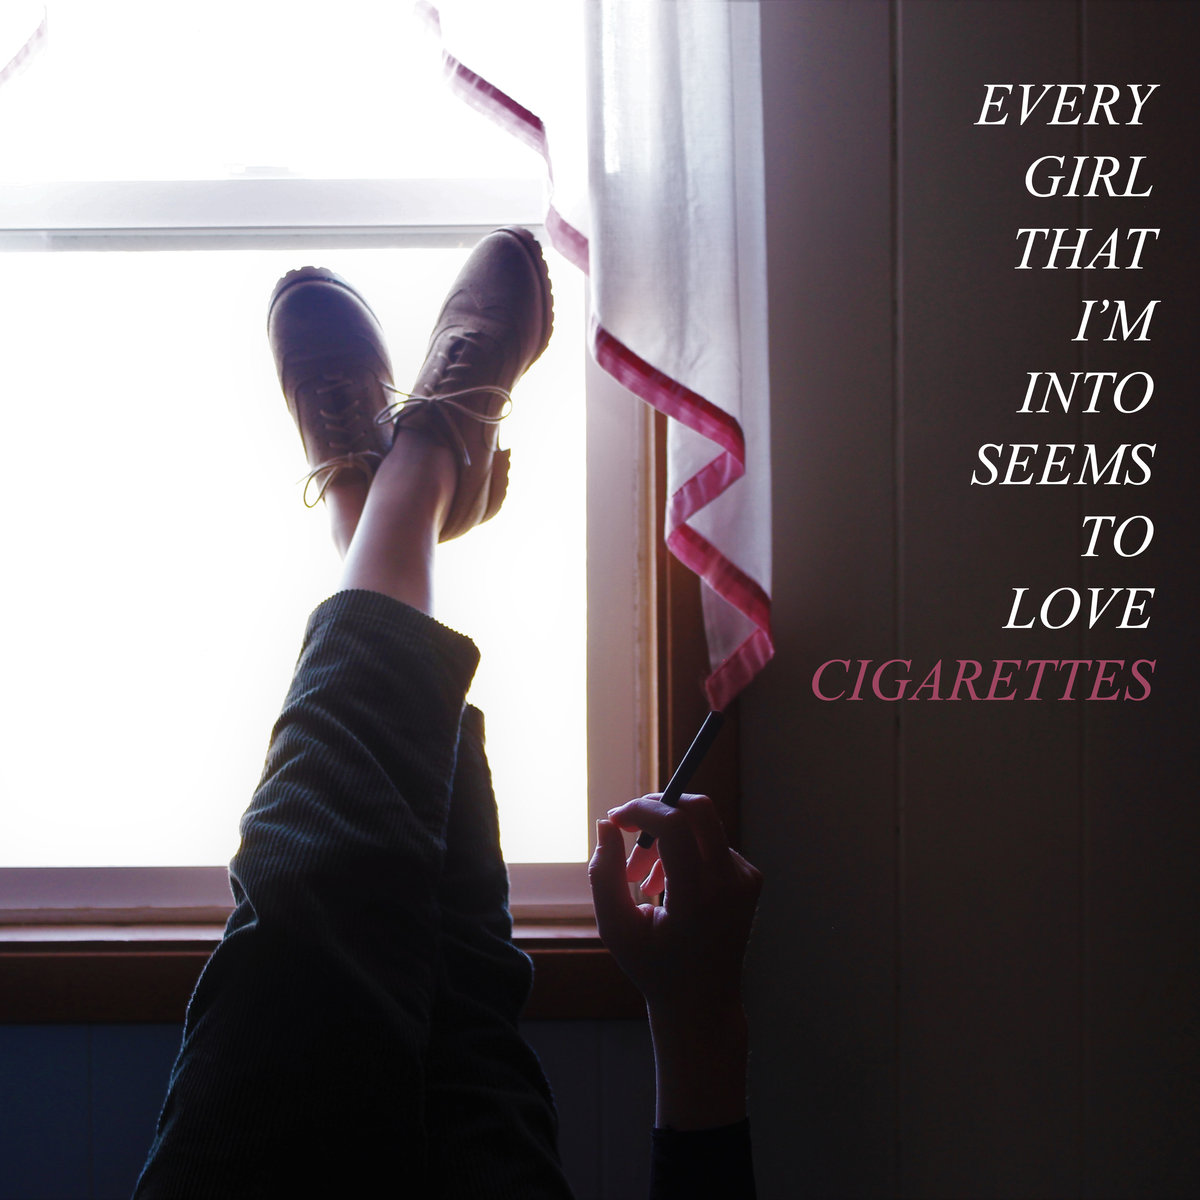 YUTZY – Every Girl That I'm Into Seems to Love Cigarettes